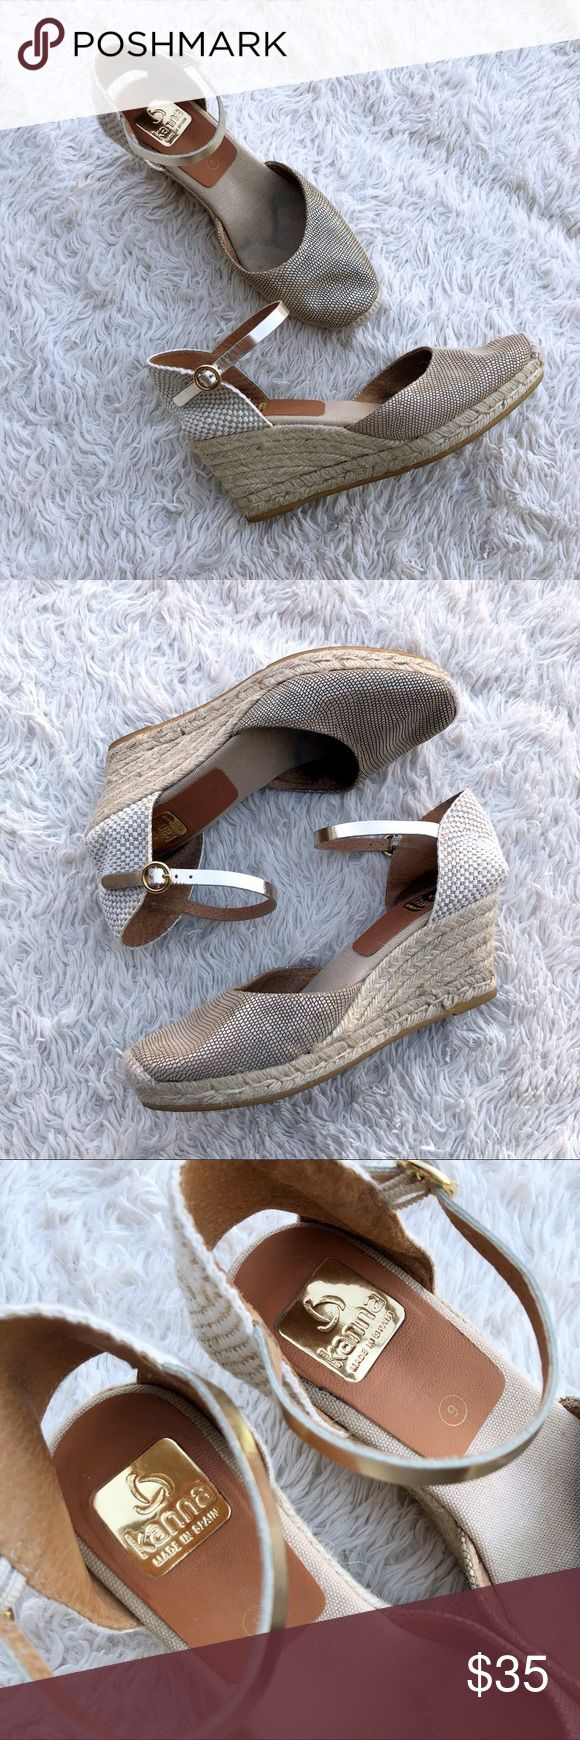 """KANNA Gold Metallic Espadrilles Wedges Gold & tan wedge espadrilles in great condition. Metallic ankle strap & 3"""" heel. There is some staining on the footbed; but these really look like they've hardly been worn. ✨OFFERS WELCOME✨ Kanna Shoes Espadrilles"""